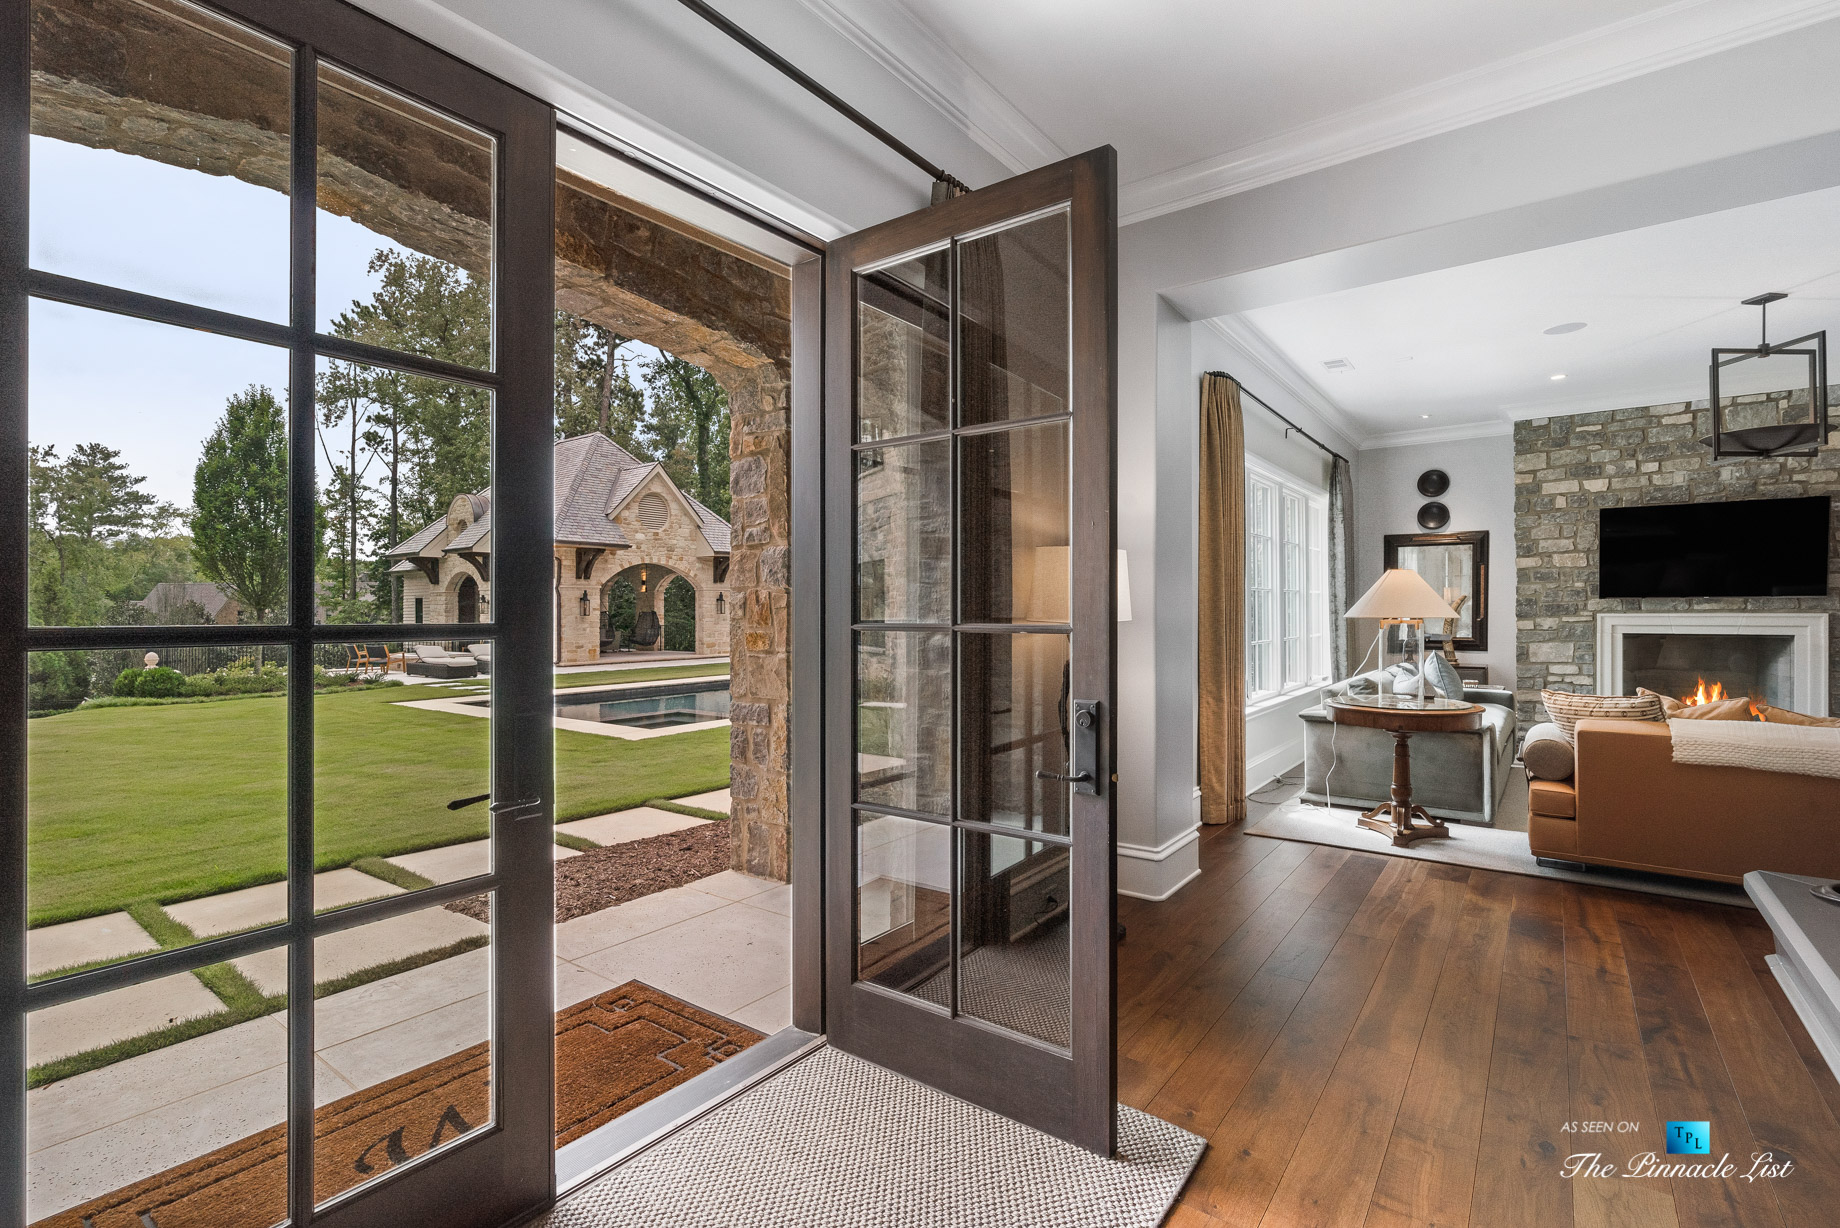 1150 W Garmon Rd, Atlanta, GA, USA – Recreation Room Exterior Glass Doors – Luxury Real Estate – Buckhead Estate Home